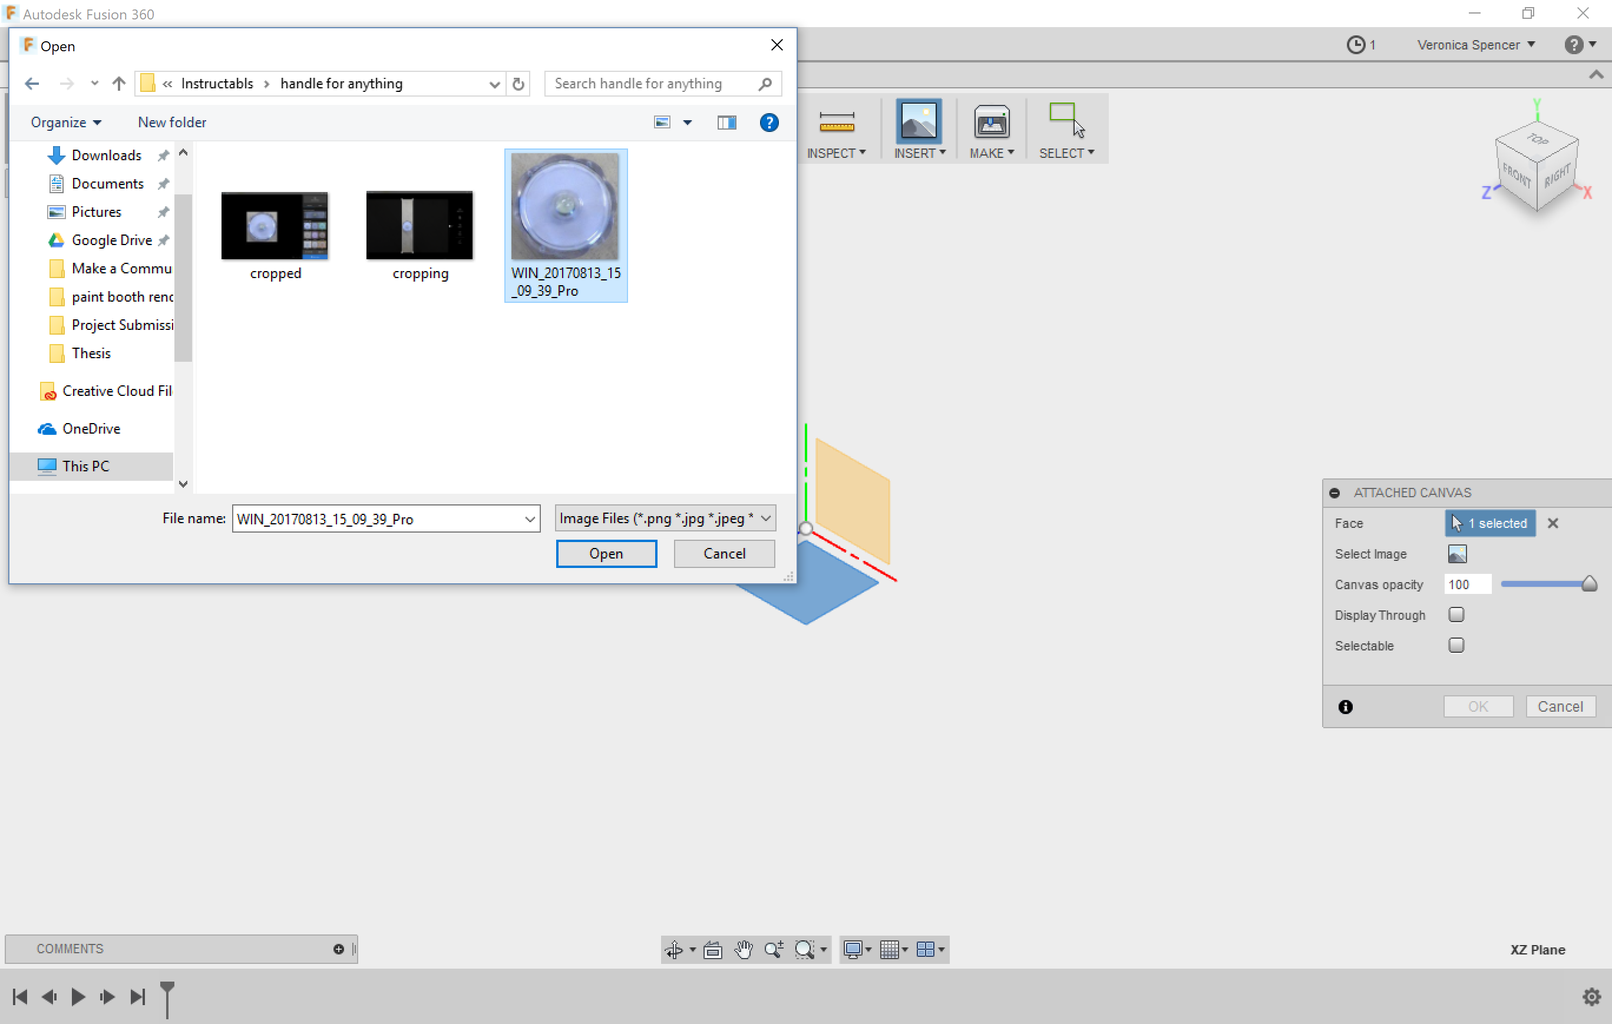 Import Images Into Fusion 360.